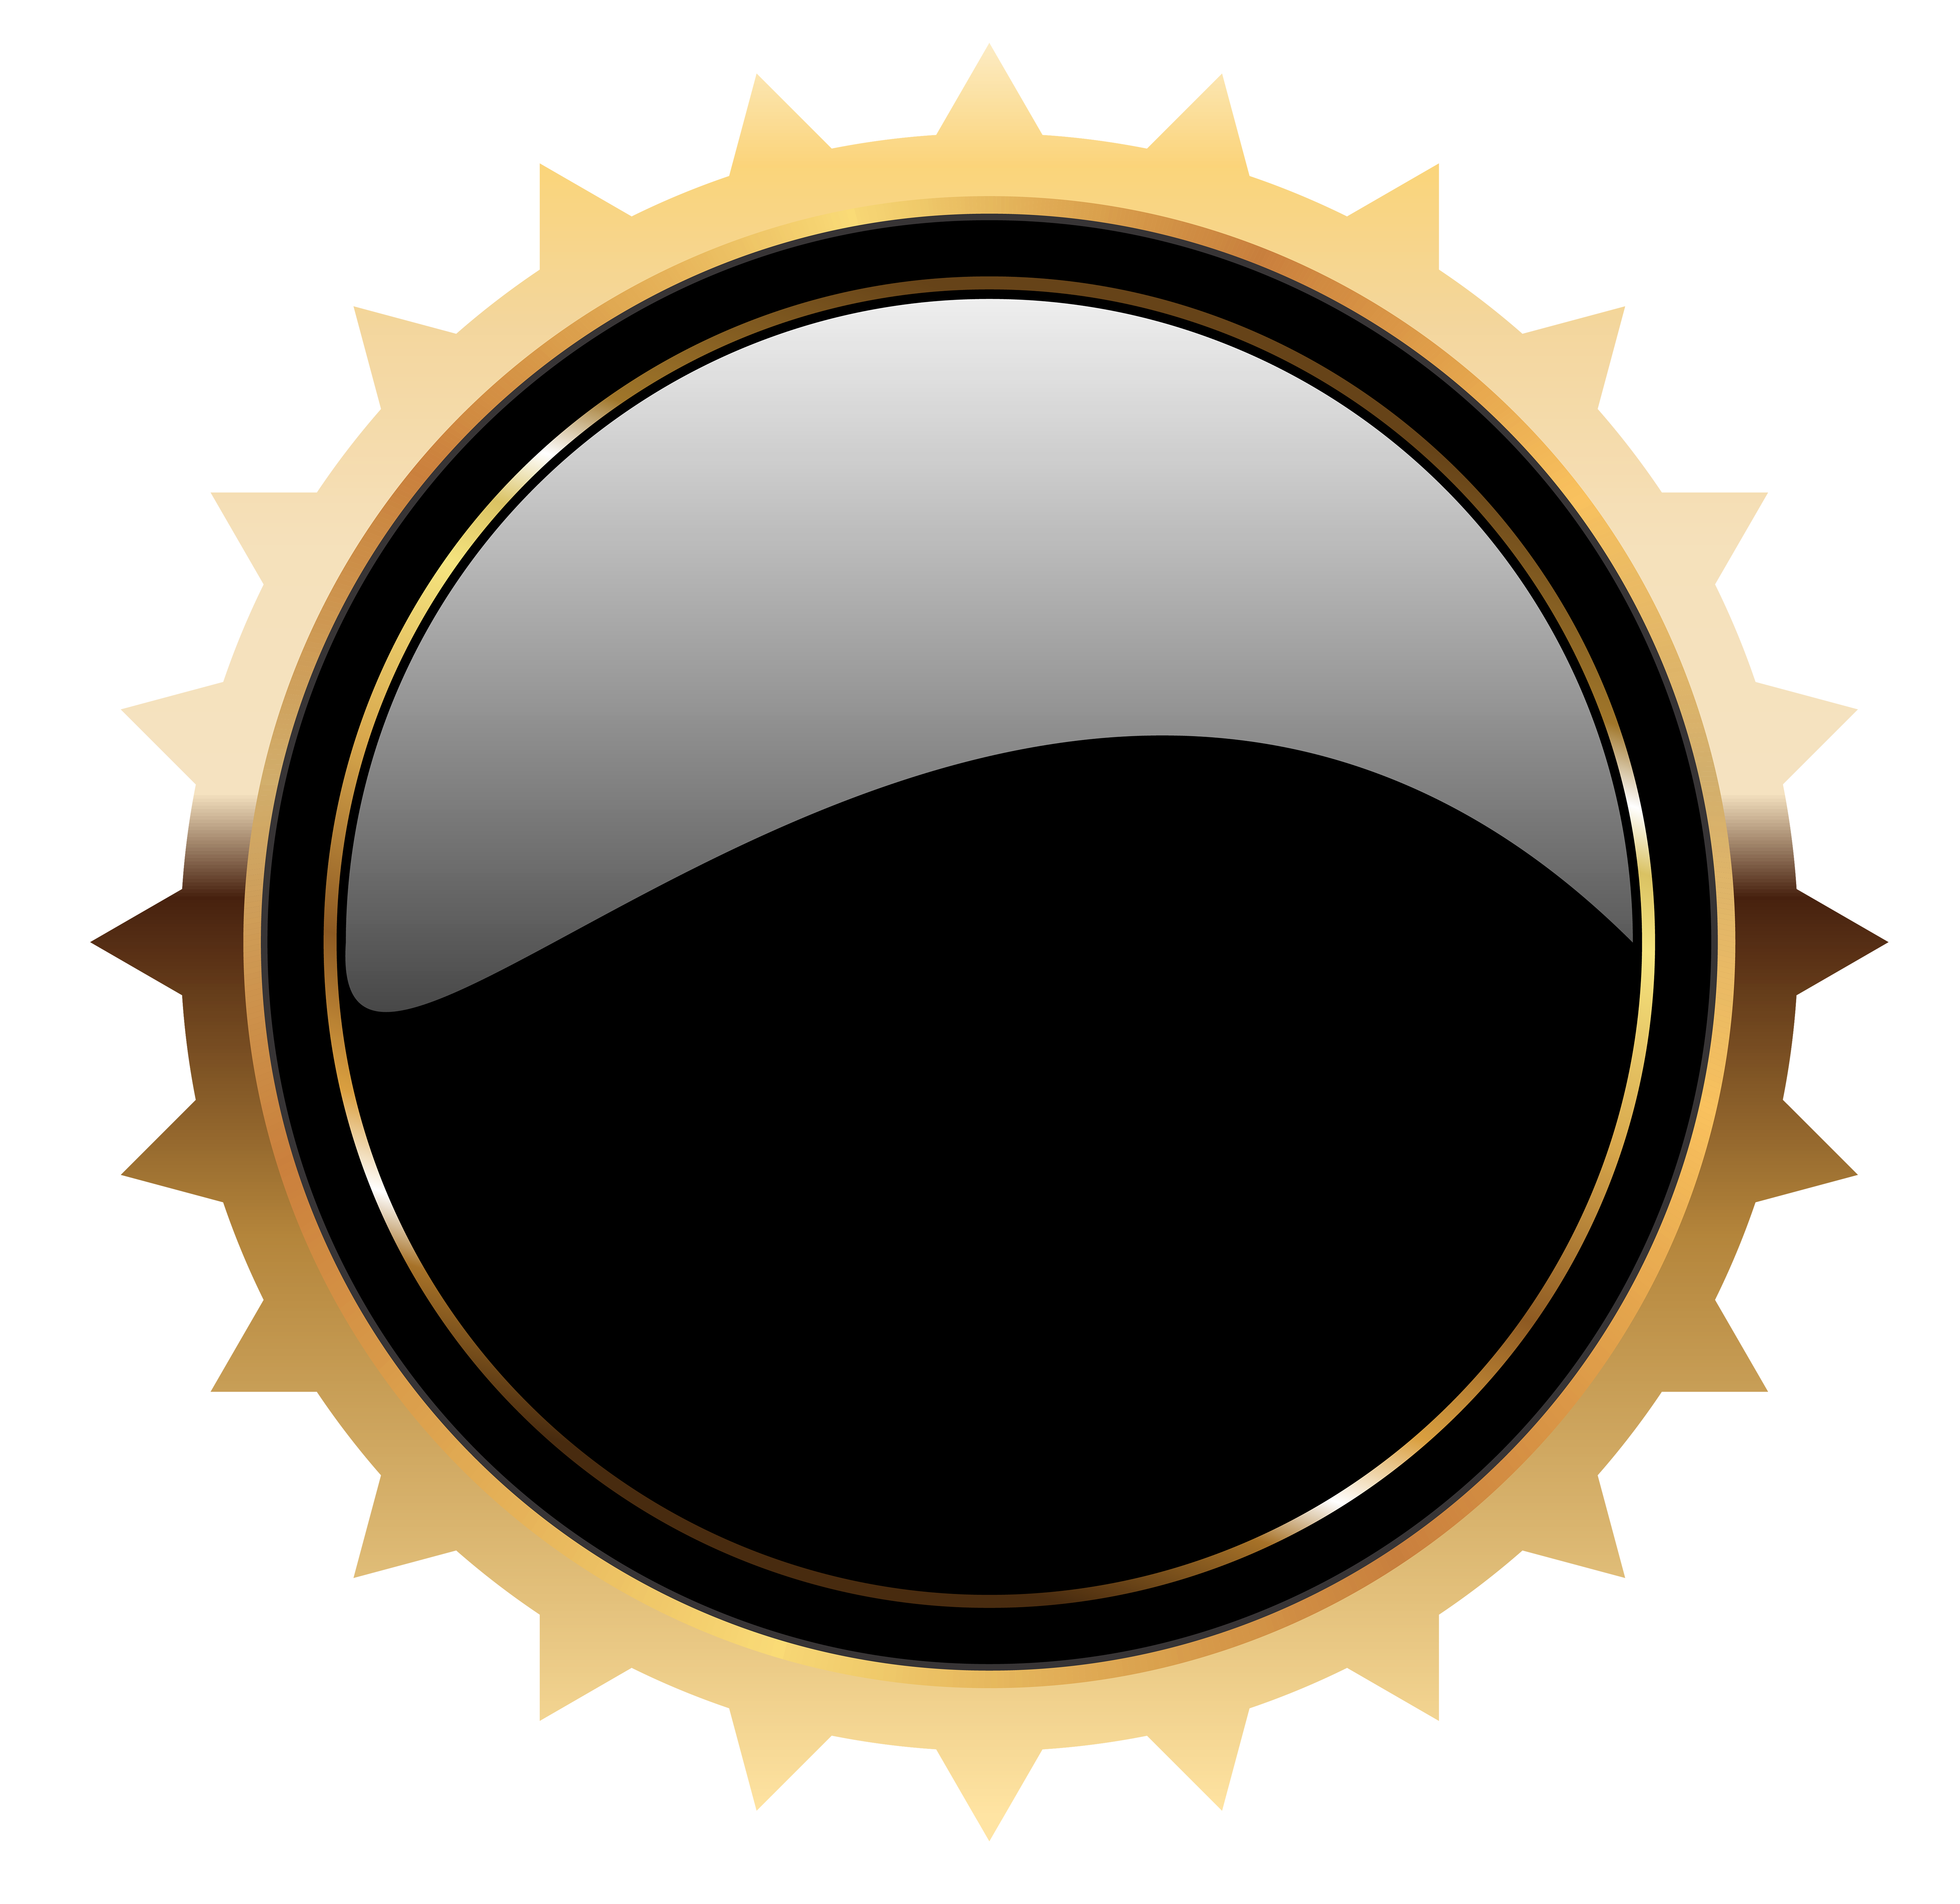 Black badge template png. Seal clipart happy